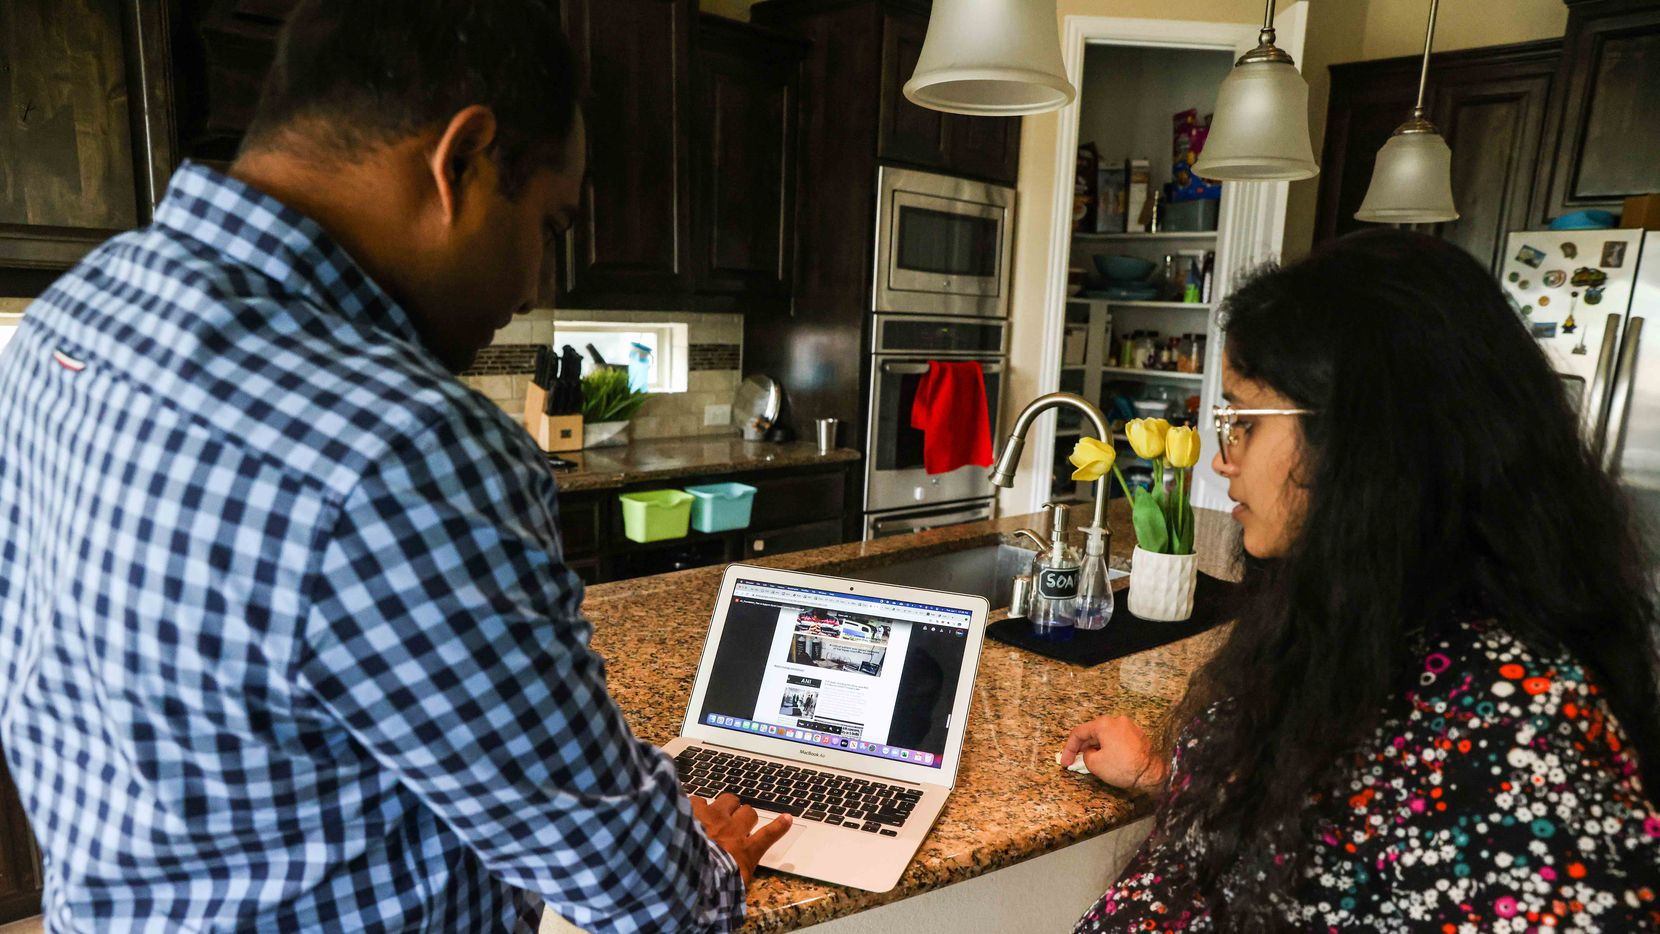 Kartheek Veeravalli (left), 36, and Gowri Pujitha Appana, 31, of Euless work on their GiveIndia.org site, which is helping rural areas in India fight the second wave of the pandemic.